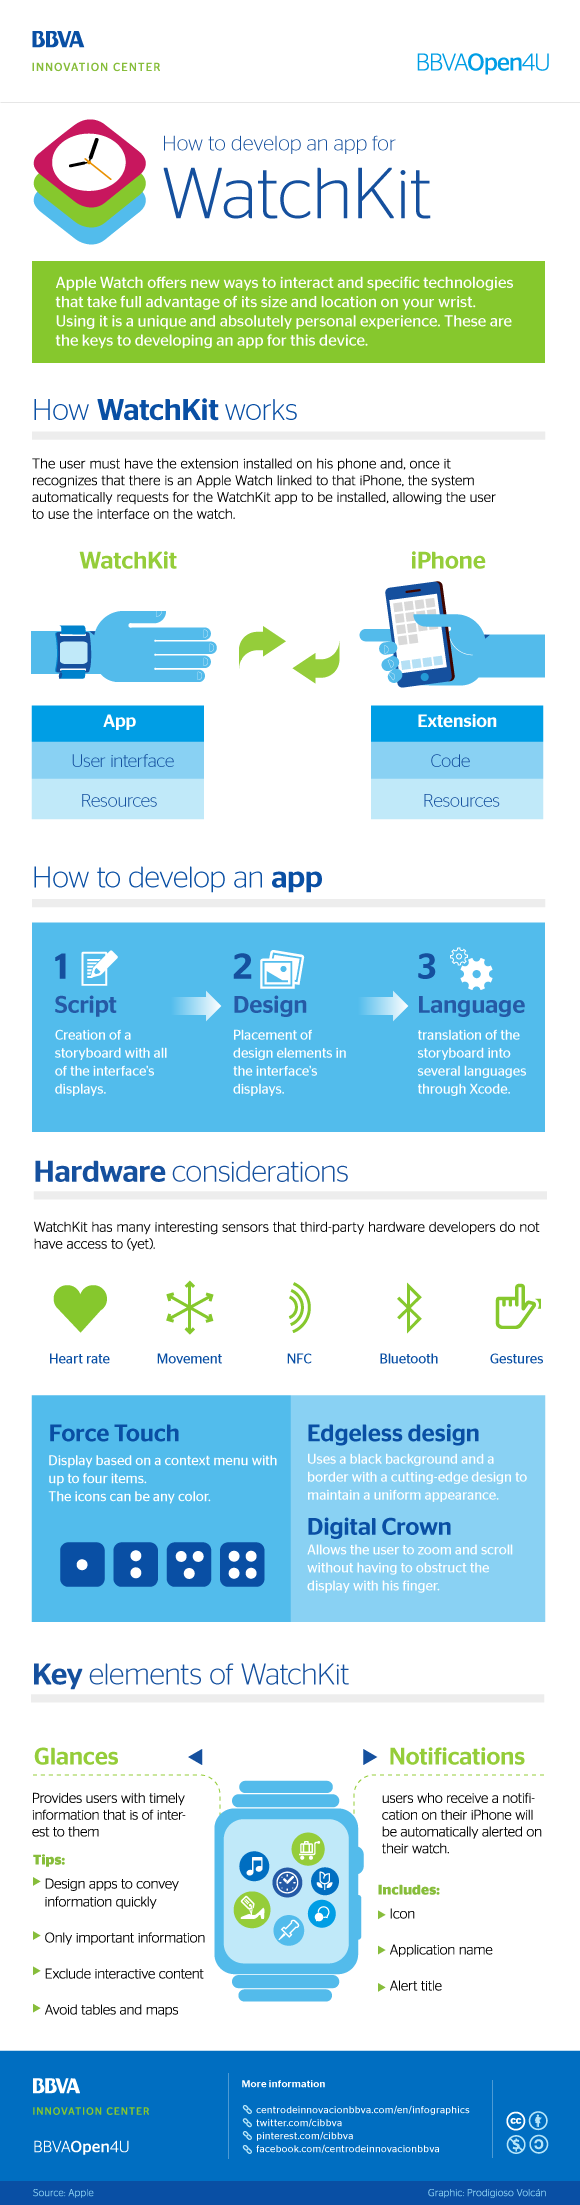 Infographic: how to develop an app for WatchKit